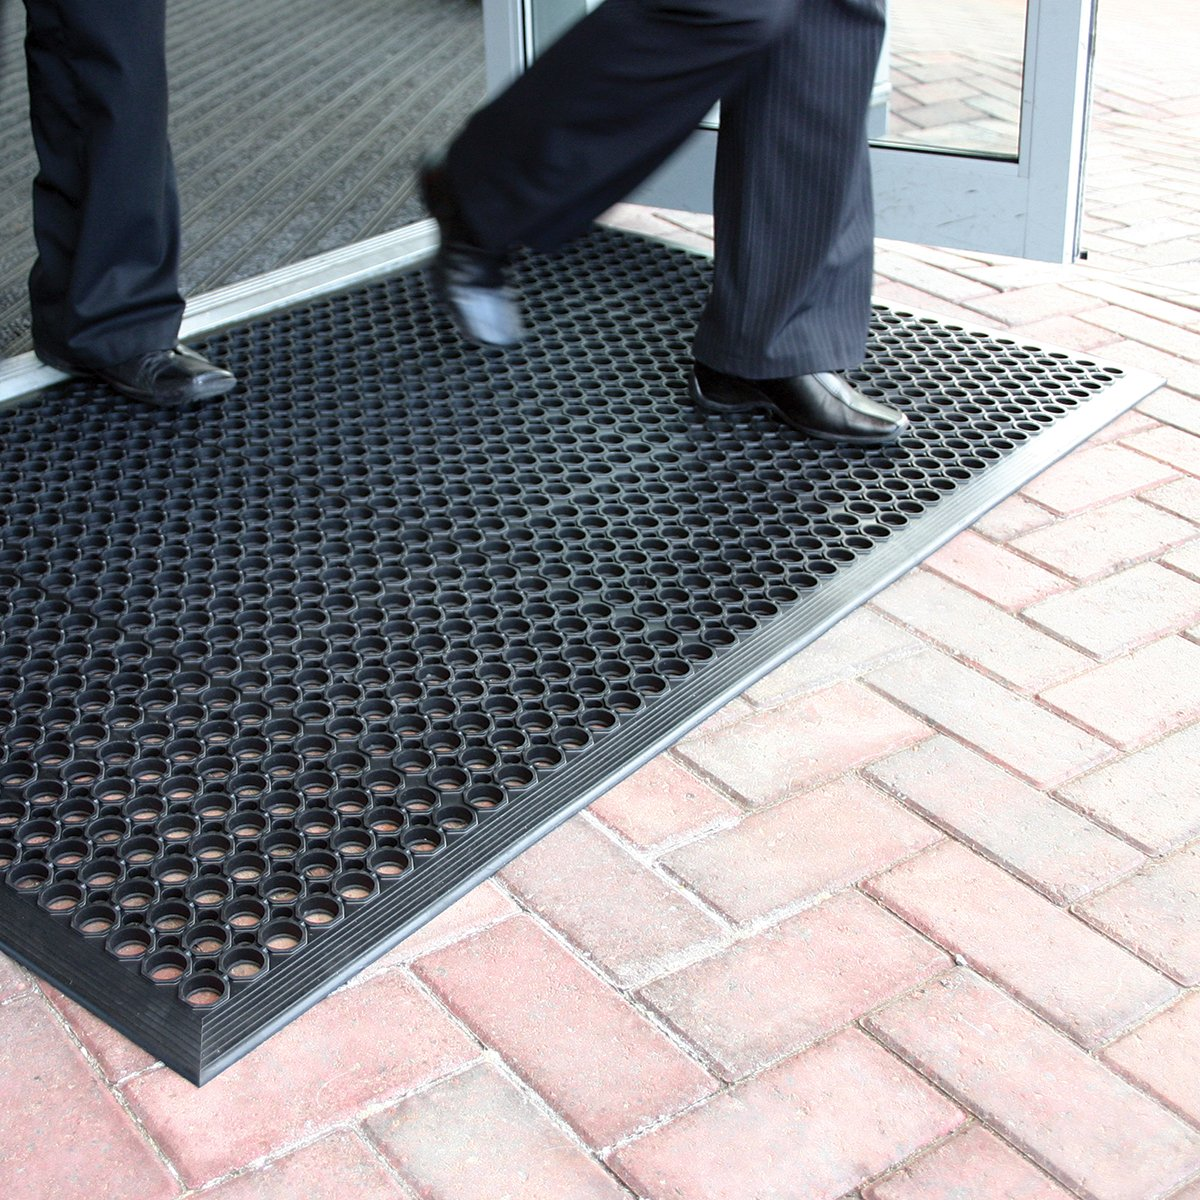 large outdoor rubber entrance mats anti slip drainage door mat flooring 3 sizes available 09m x15m by bigdug amazoncouk kitchen u0026 home - Rubber Door Mat